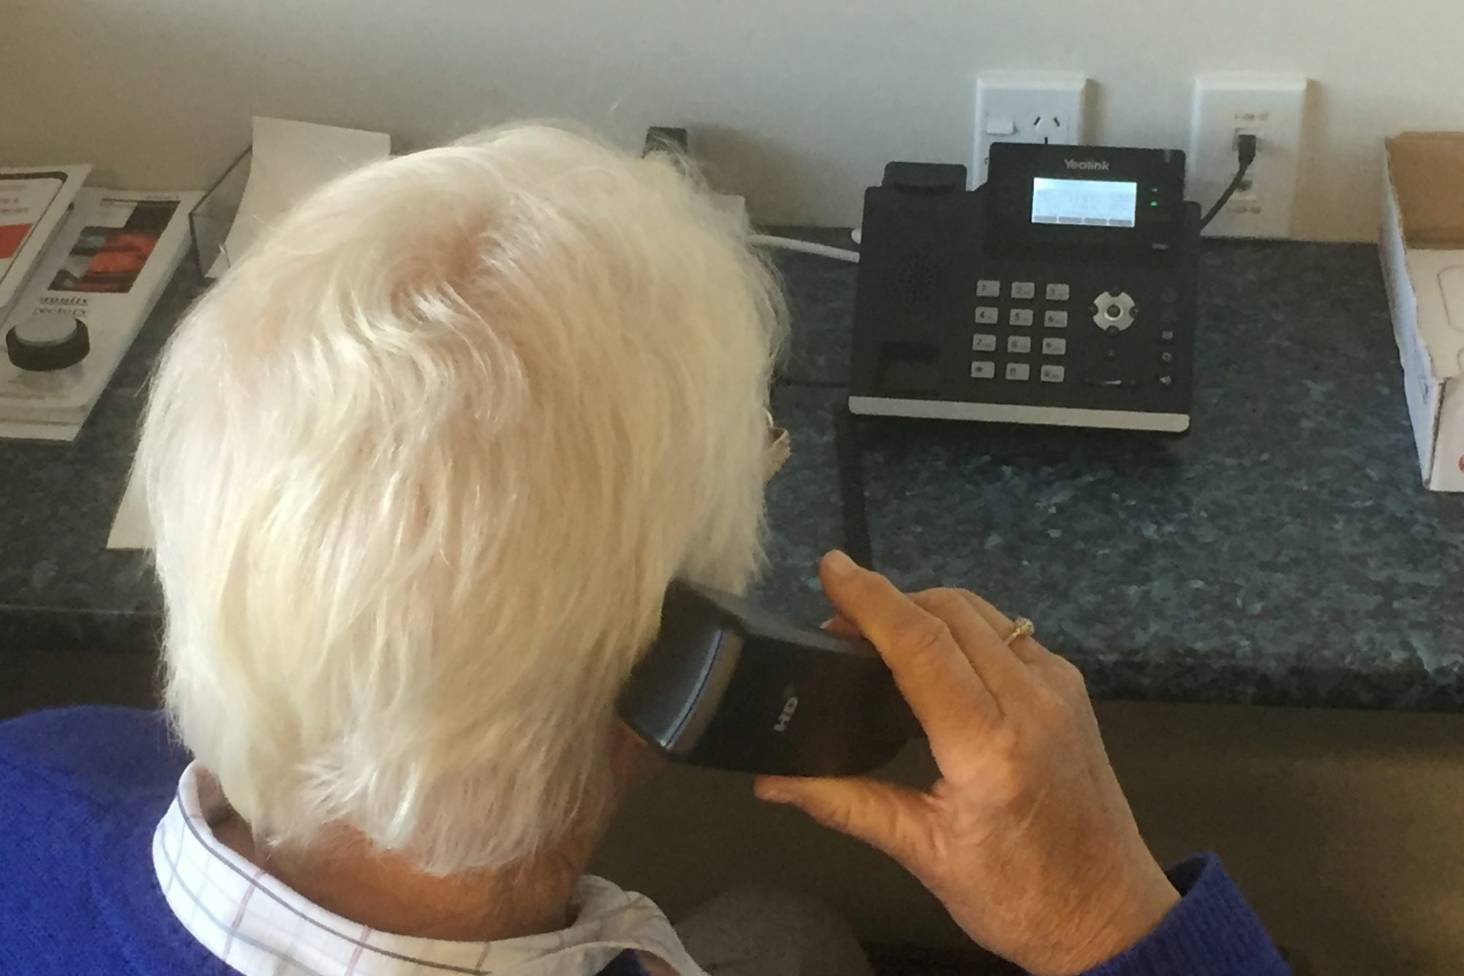 Over 40's more likely to access telephone helpline | Stuff co nz